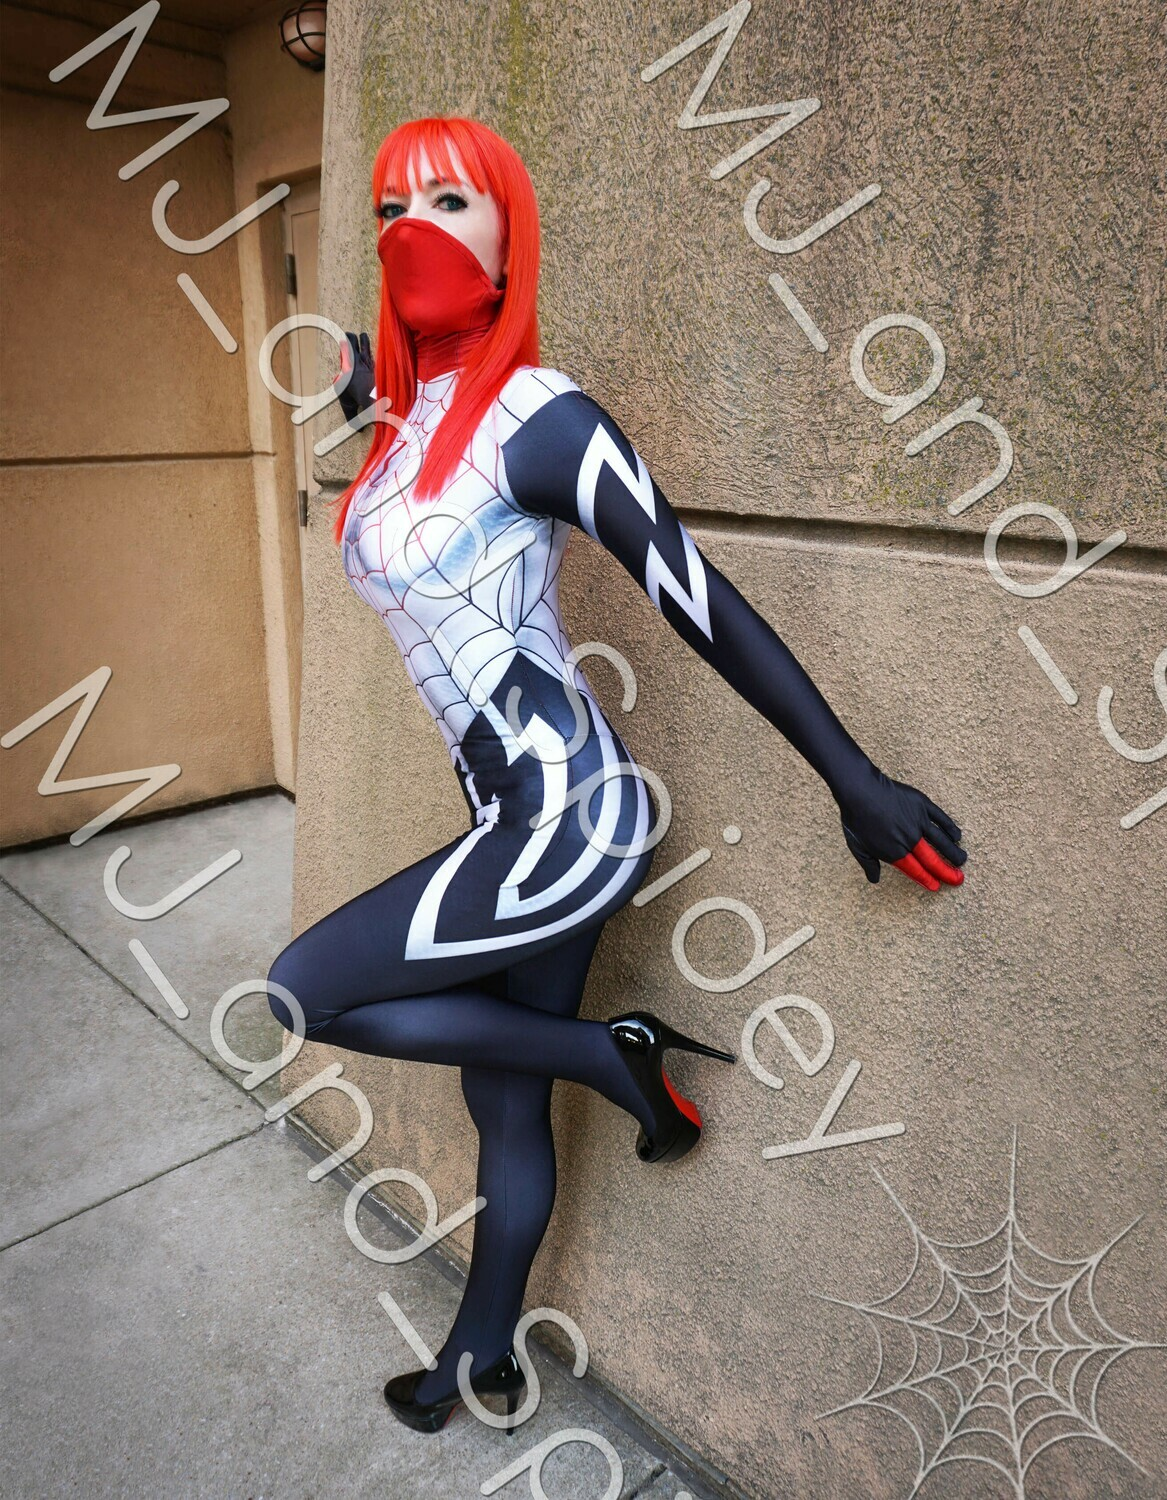 Marvel - Spider-Man - Mary Jane Watson - Silk No. 3 - 8.5x11 Cosplay Print (@MJ_and_Spidey, MJ and Spidey, Comics)